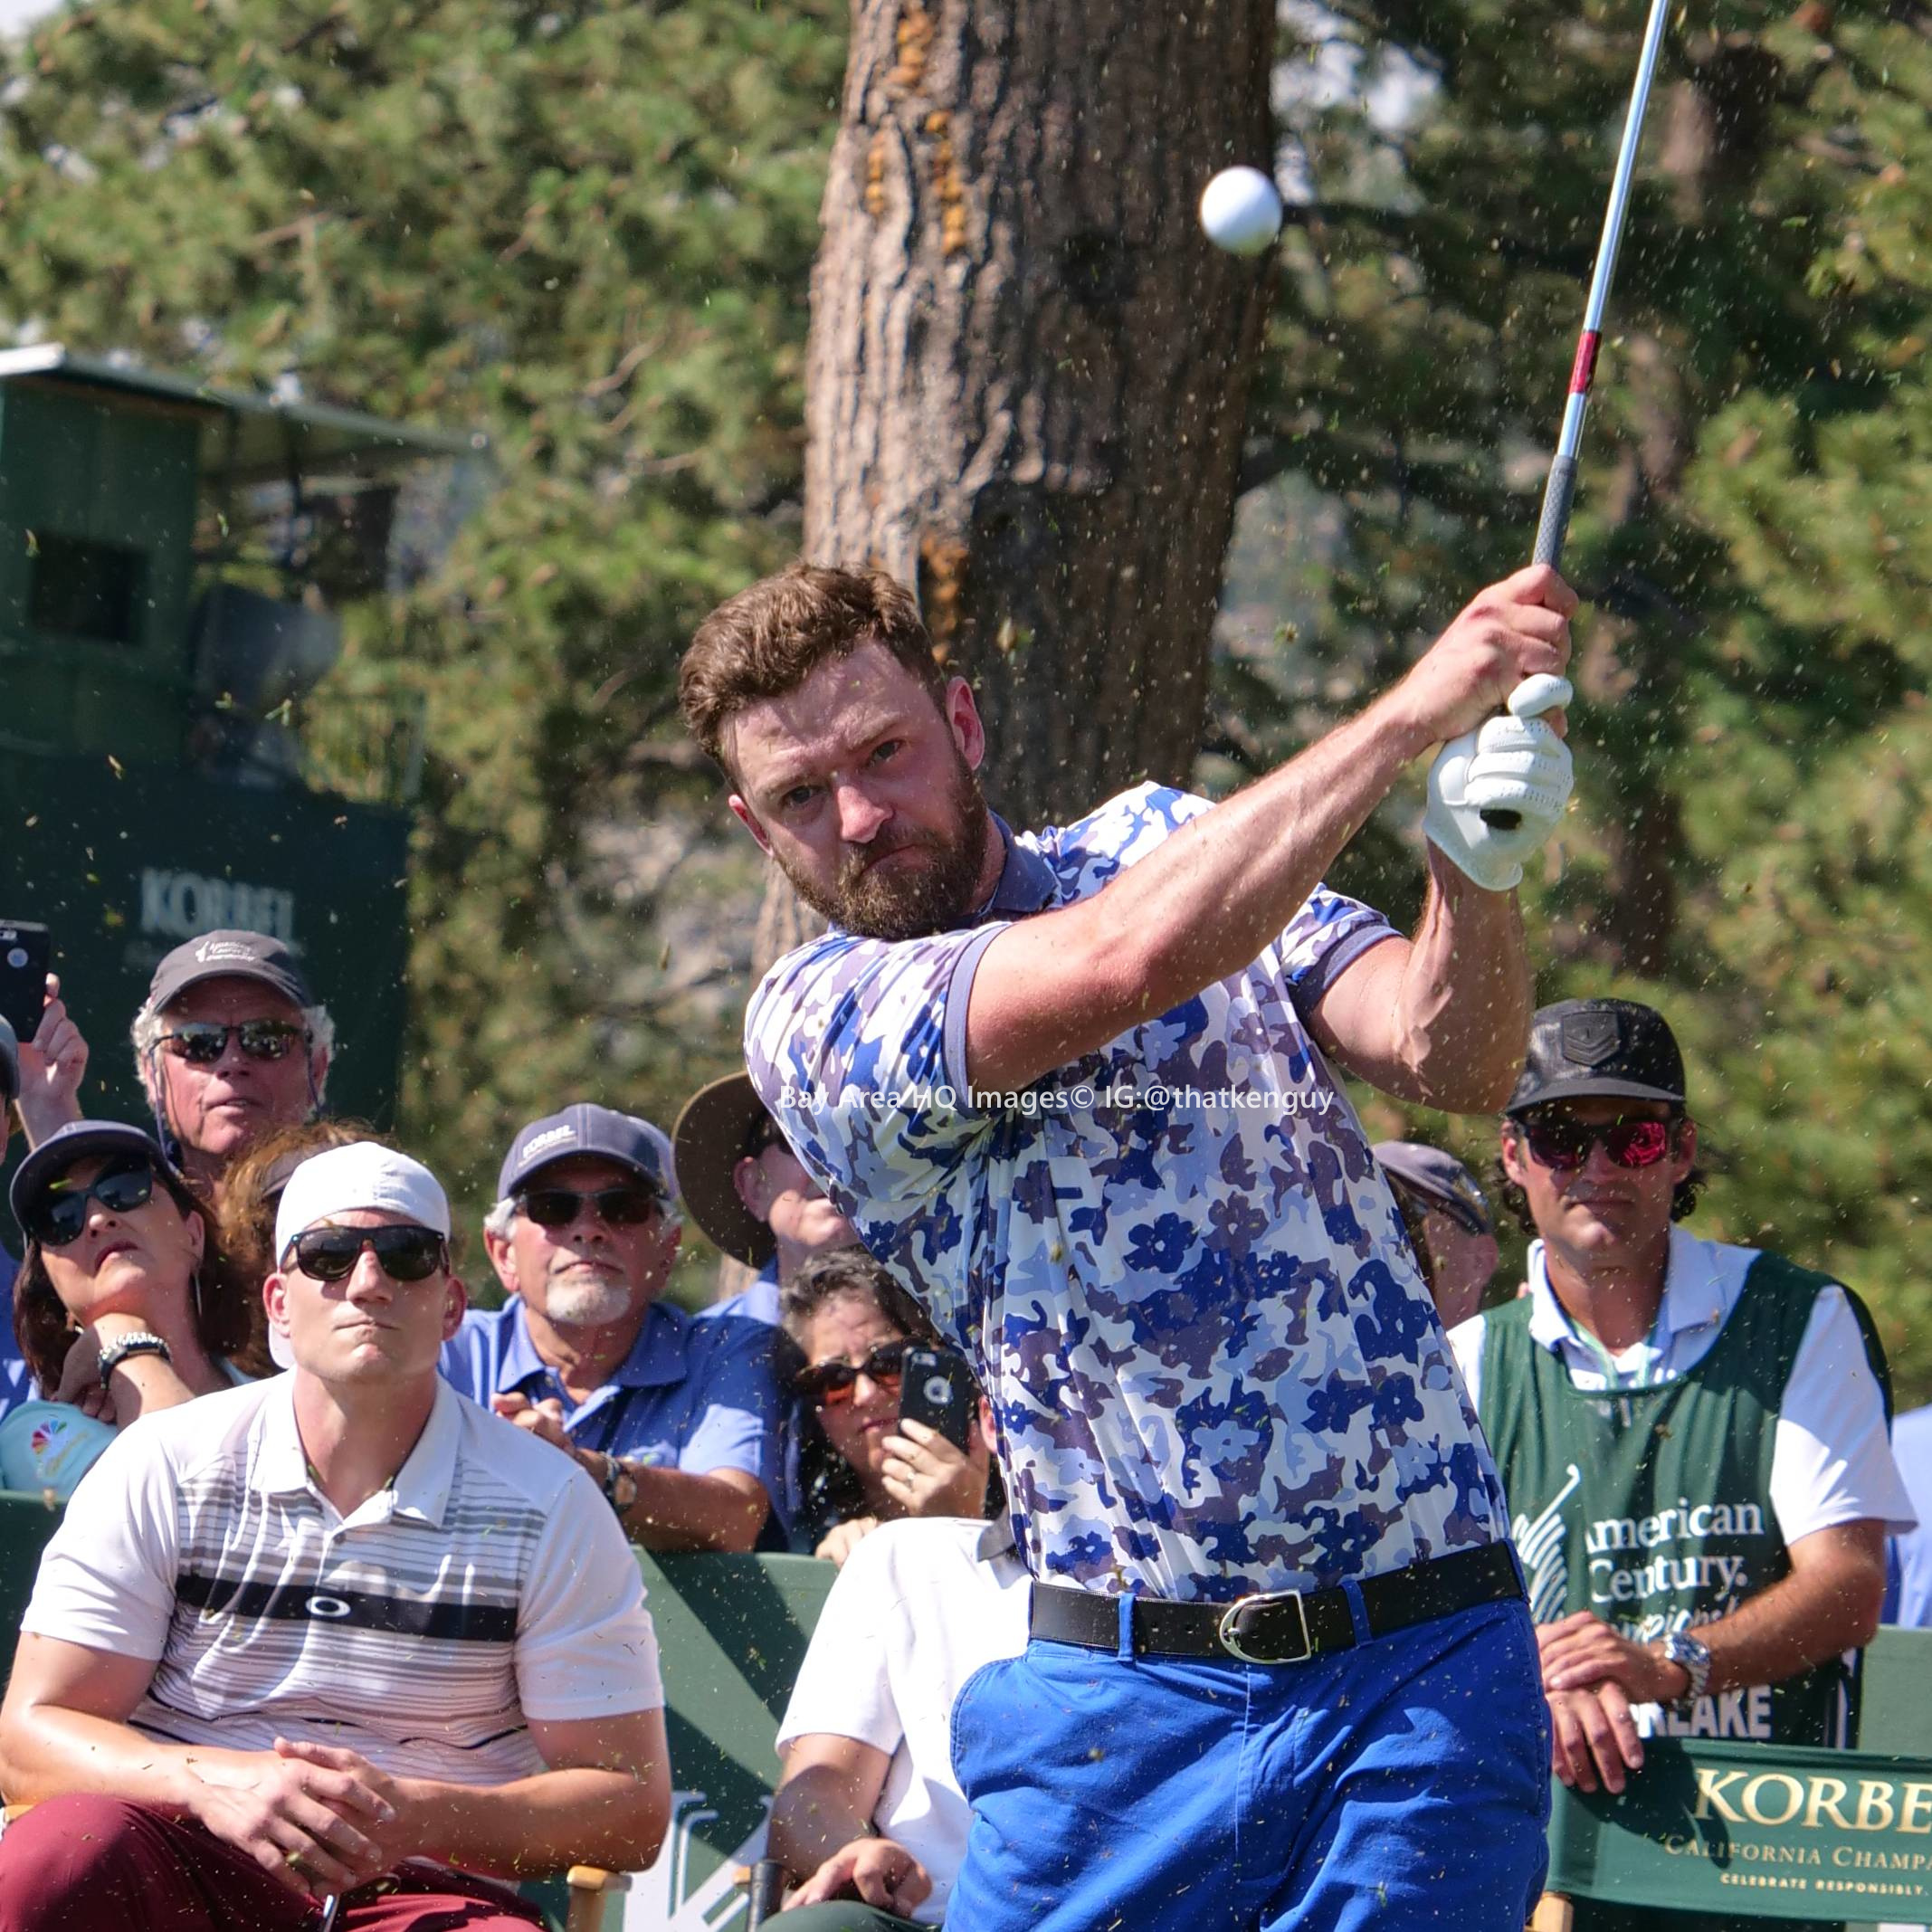 American Century Championship Photos 2017 Images - Justin Timberlake, Stephen Curry, Tony Romo, Aaron Rodggers, Charles Barkley899